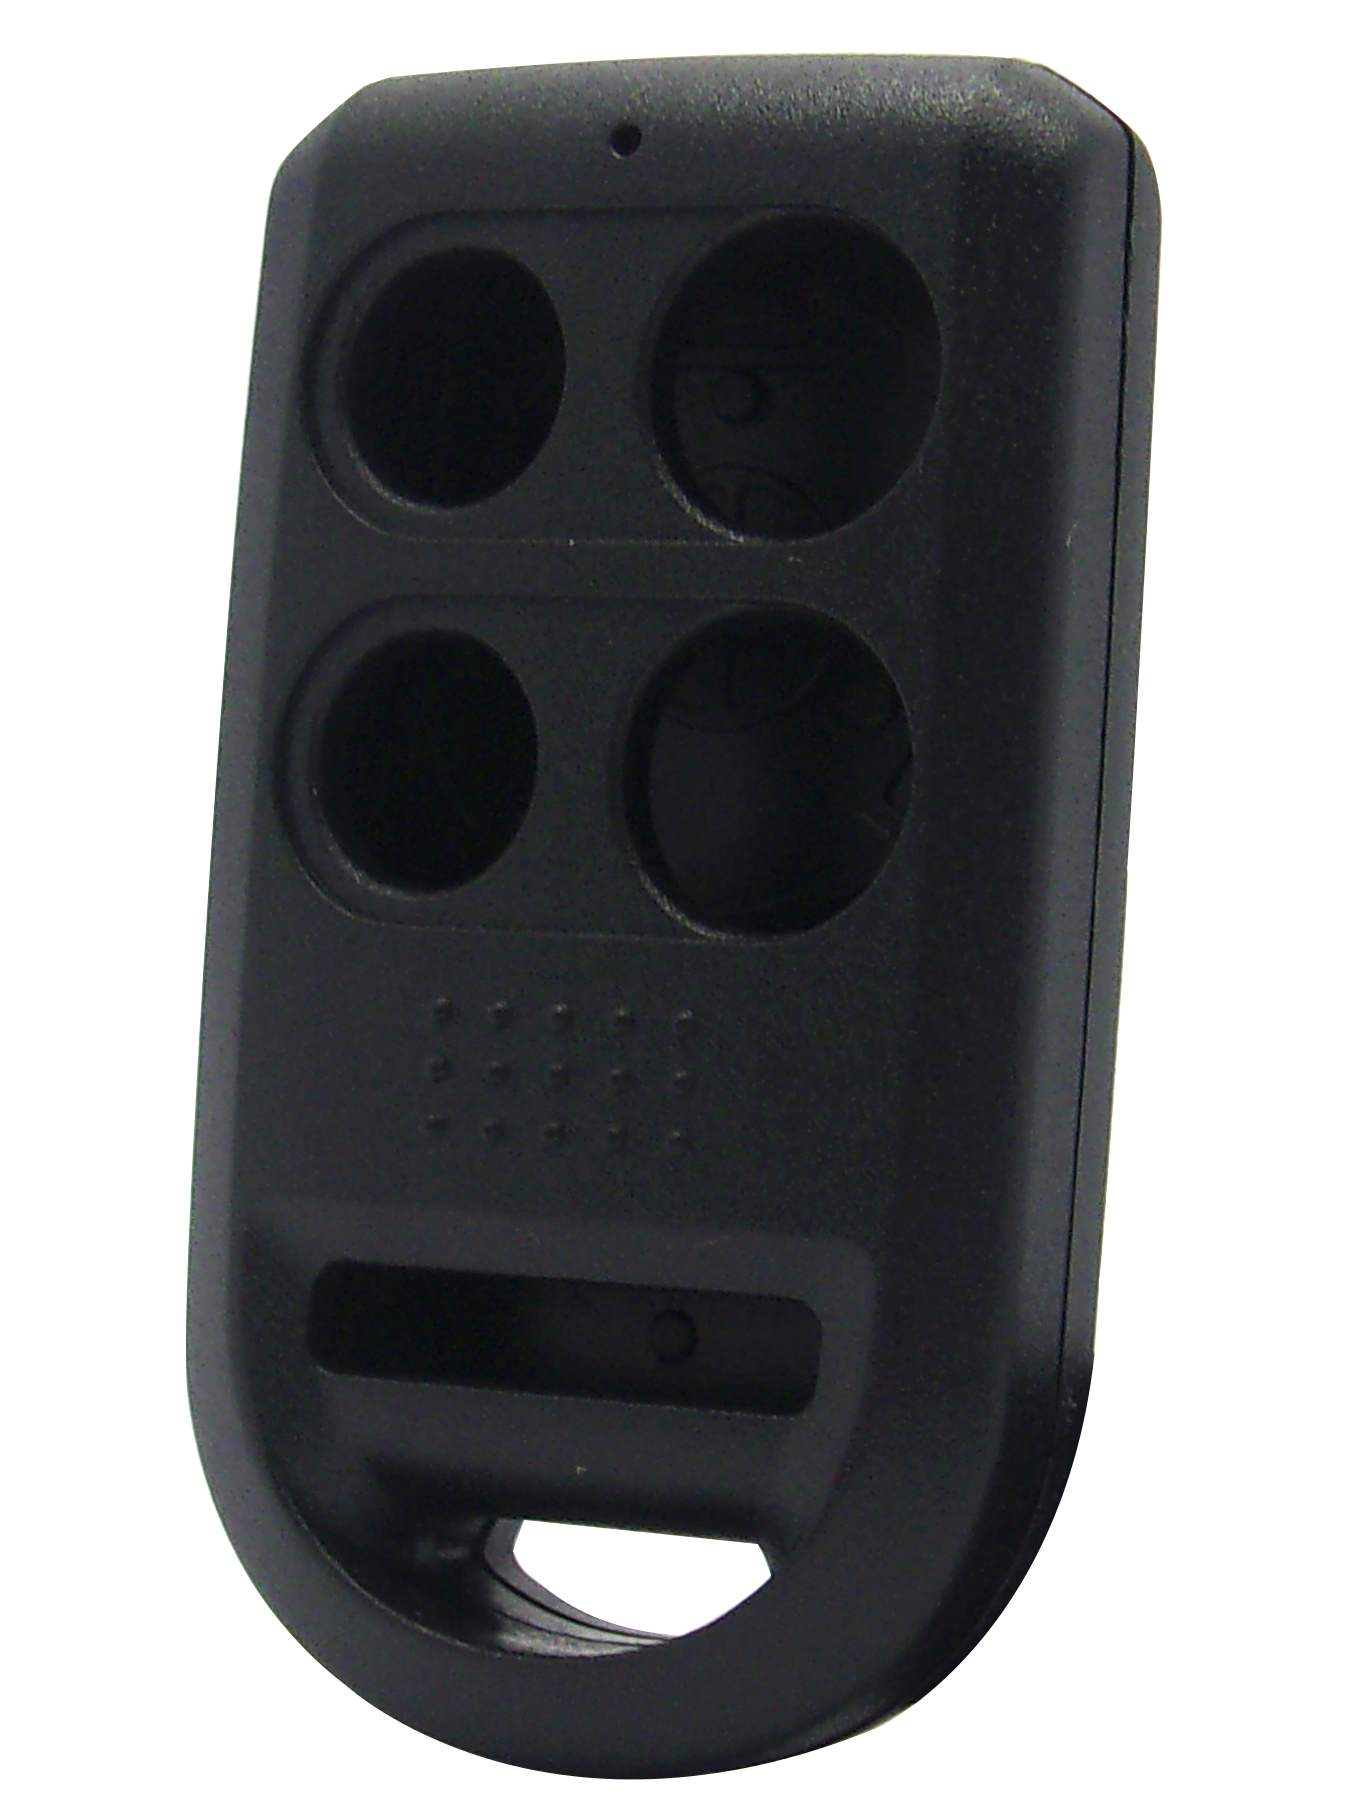 Black Replacement Remote Shell - 5 Button